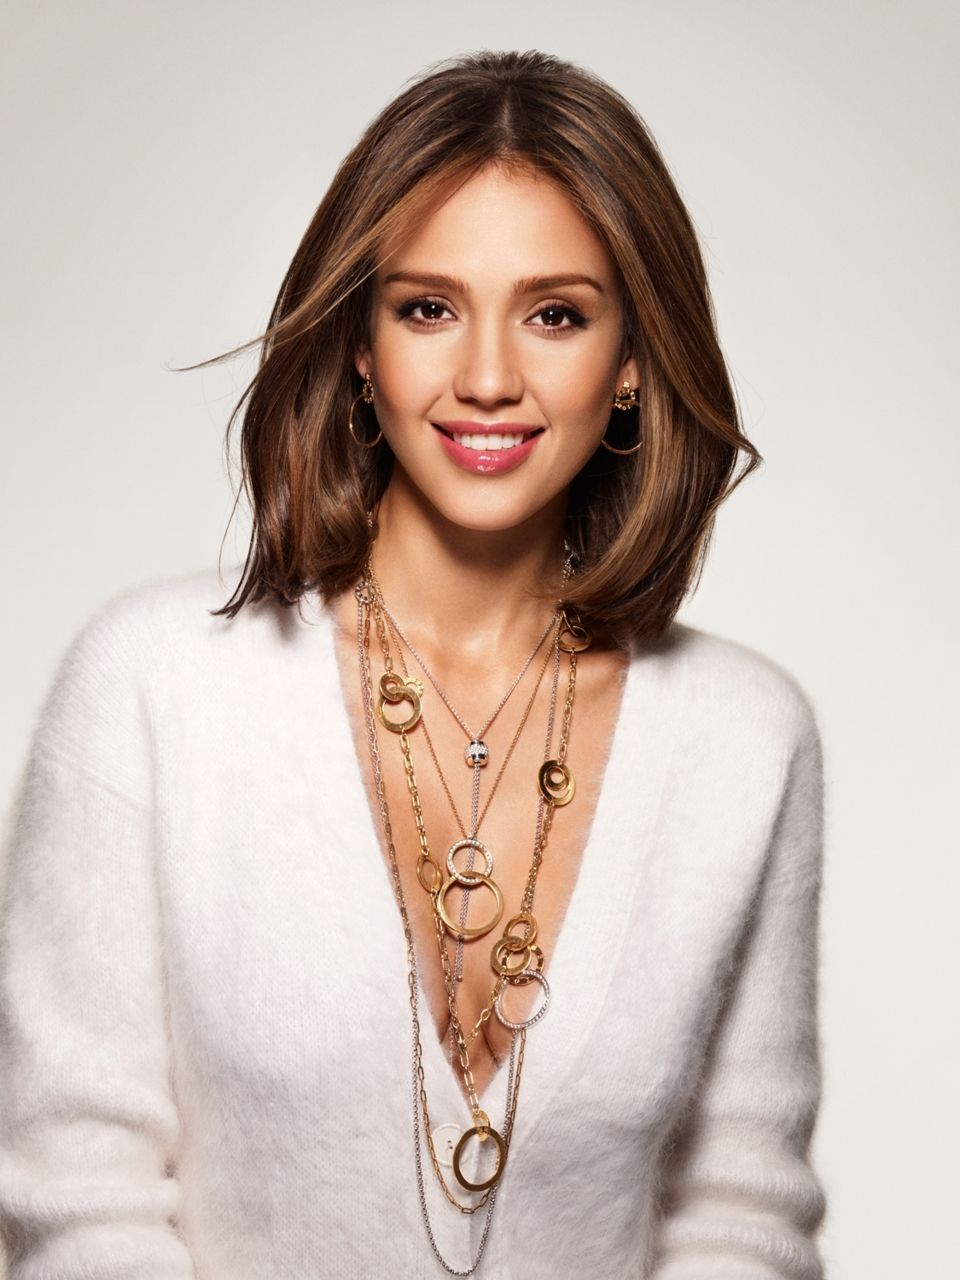 Jessica alba i love her hair style all about the hair